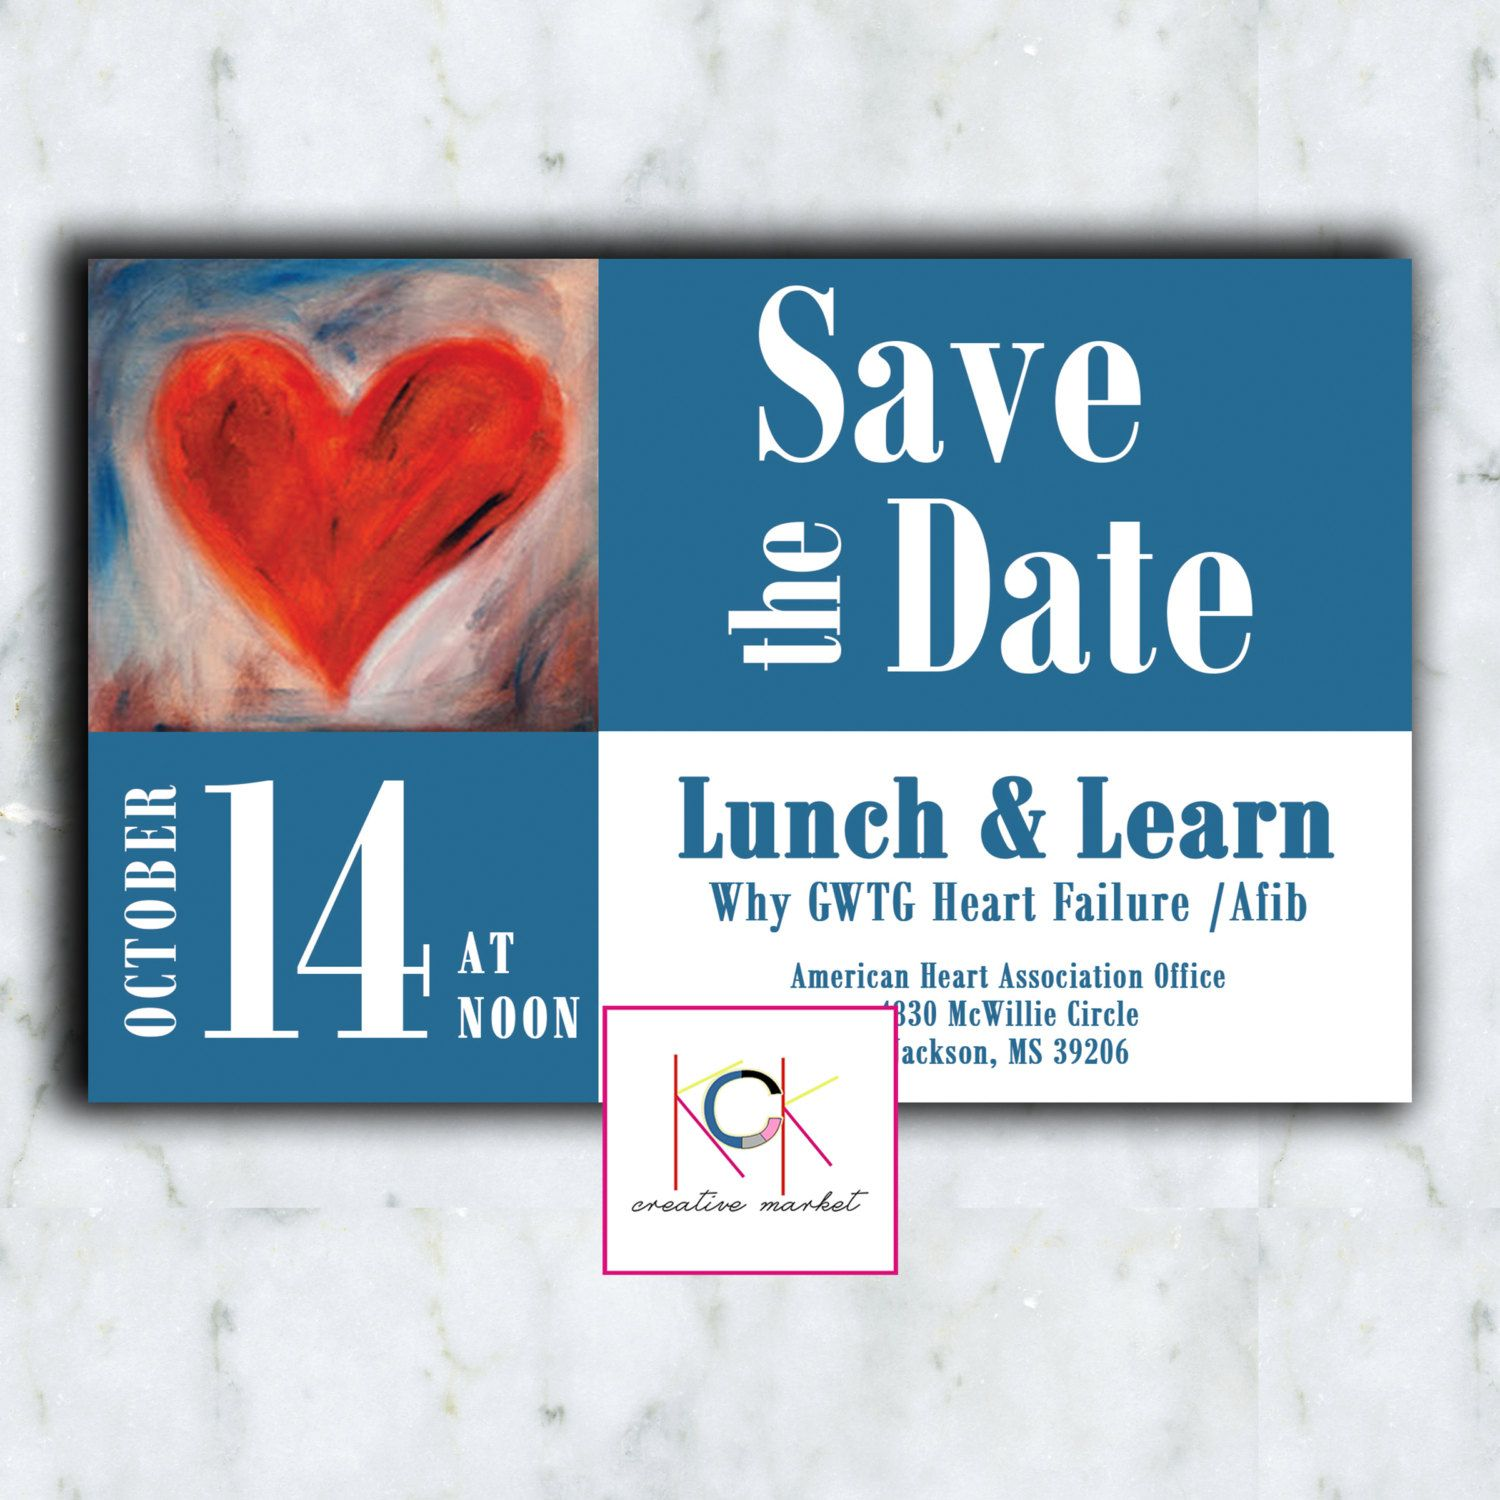 Custom Save The Date Card Meeting Reception Lunch And Learn Shower Invitation Business Meeting Diy Prints Save The Date Cards 90th Birthday Party Theme Save the date meeting template